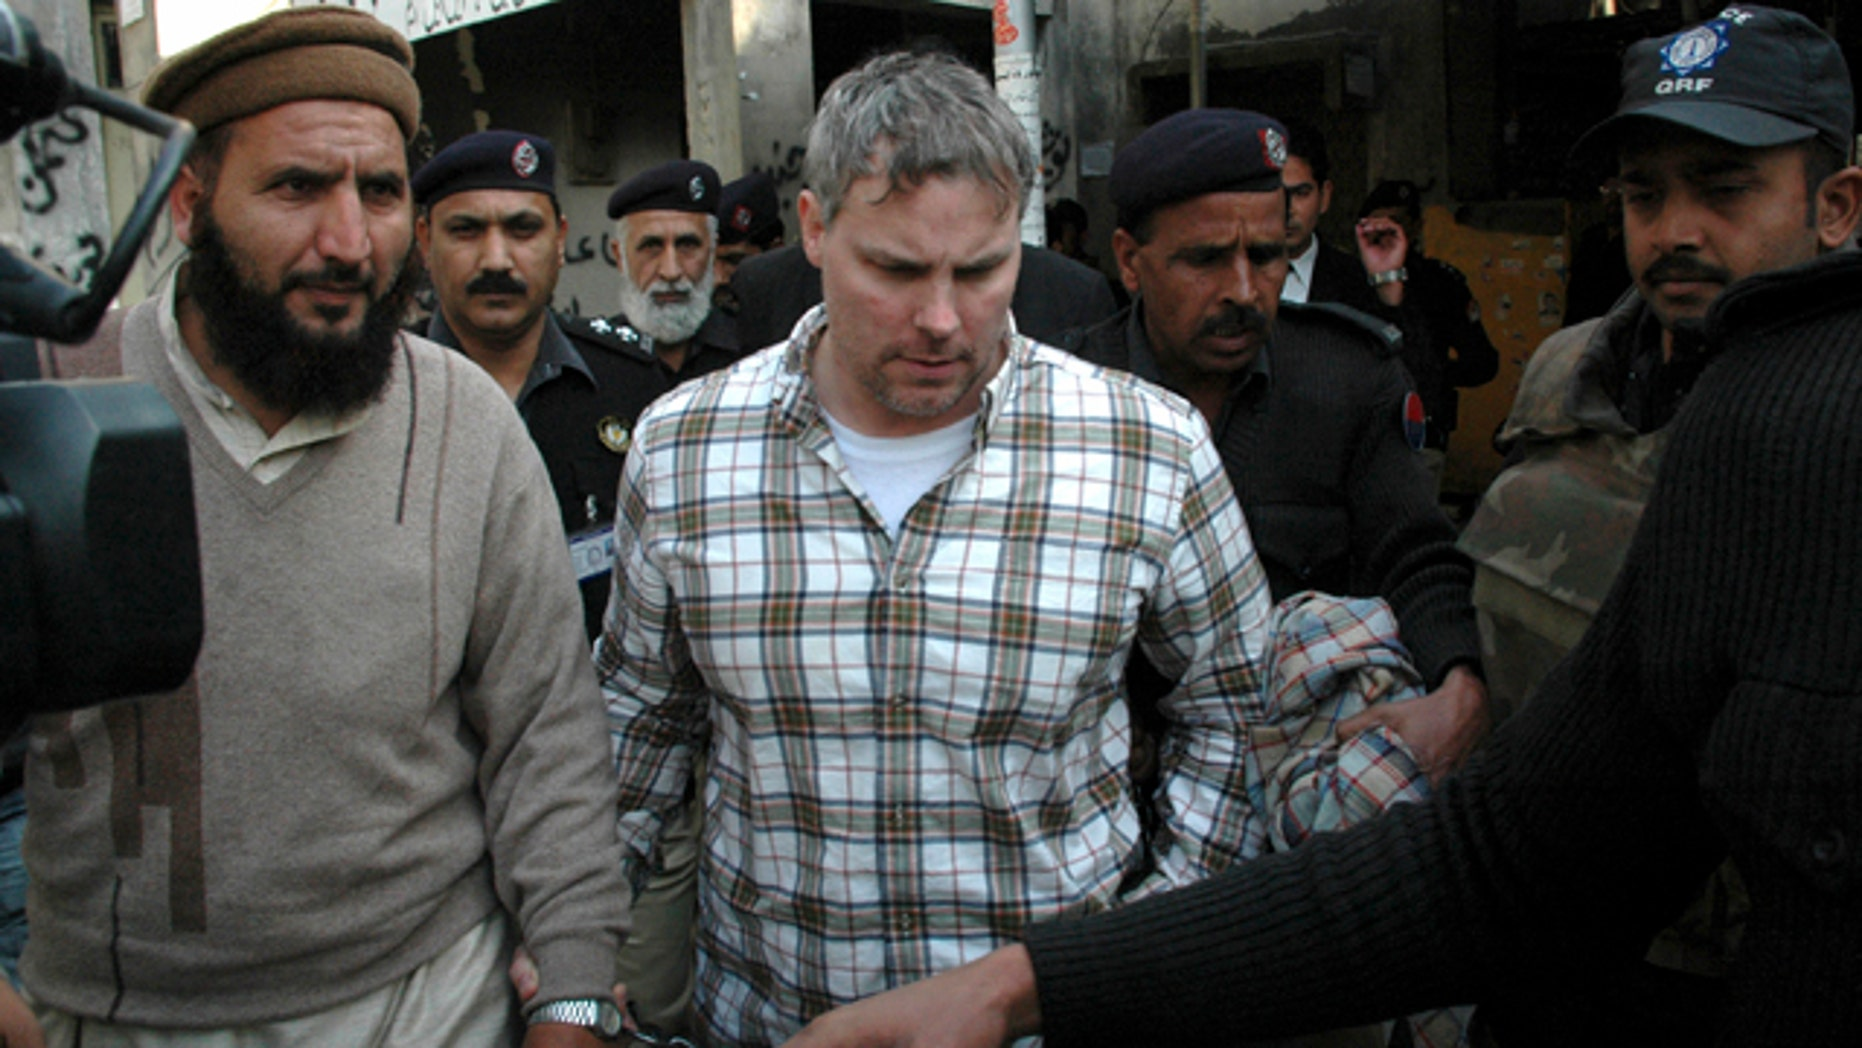 Jan. 28: Pakistani security officials escort Raymond A. Davis, a U.S. consulate employee, to a local court in Lahore, Pakistan.